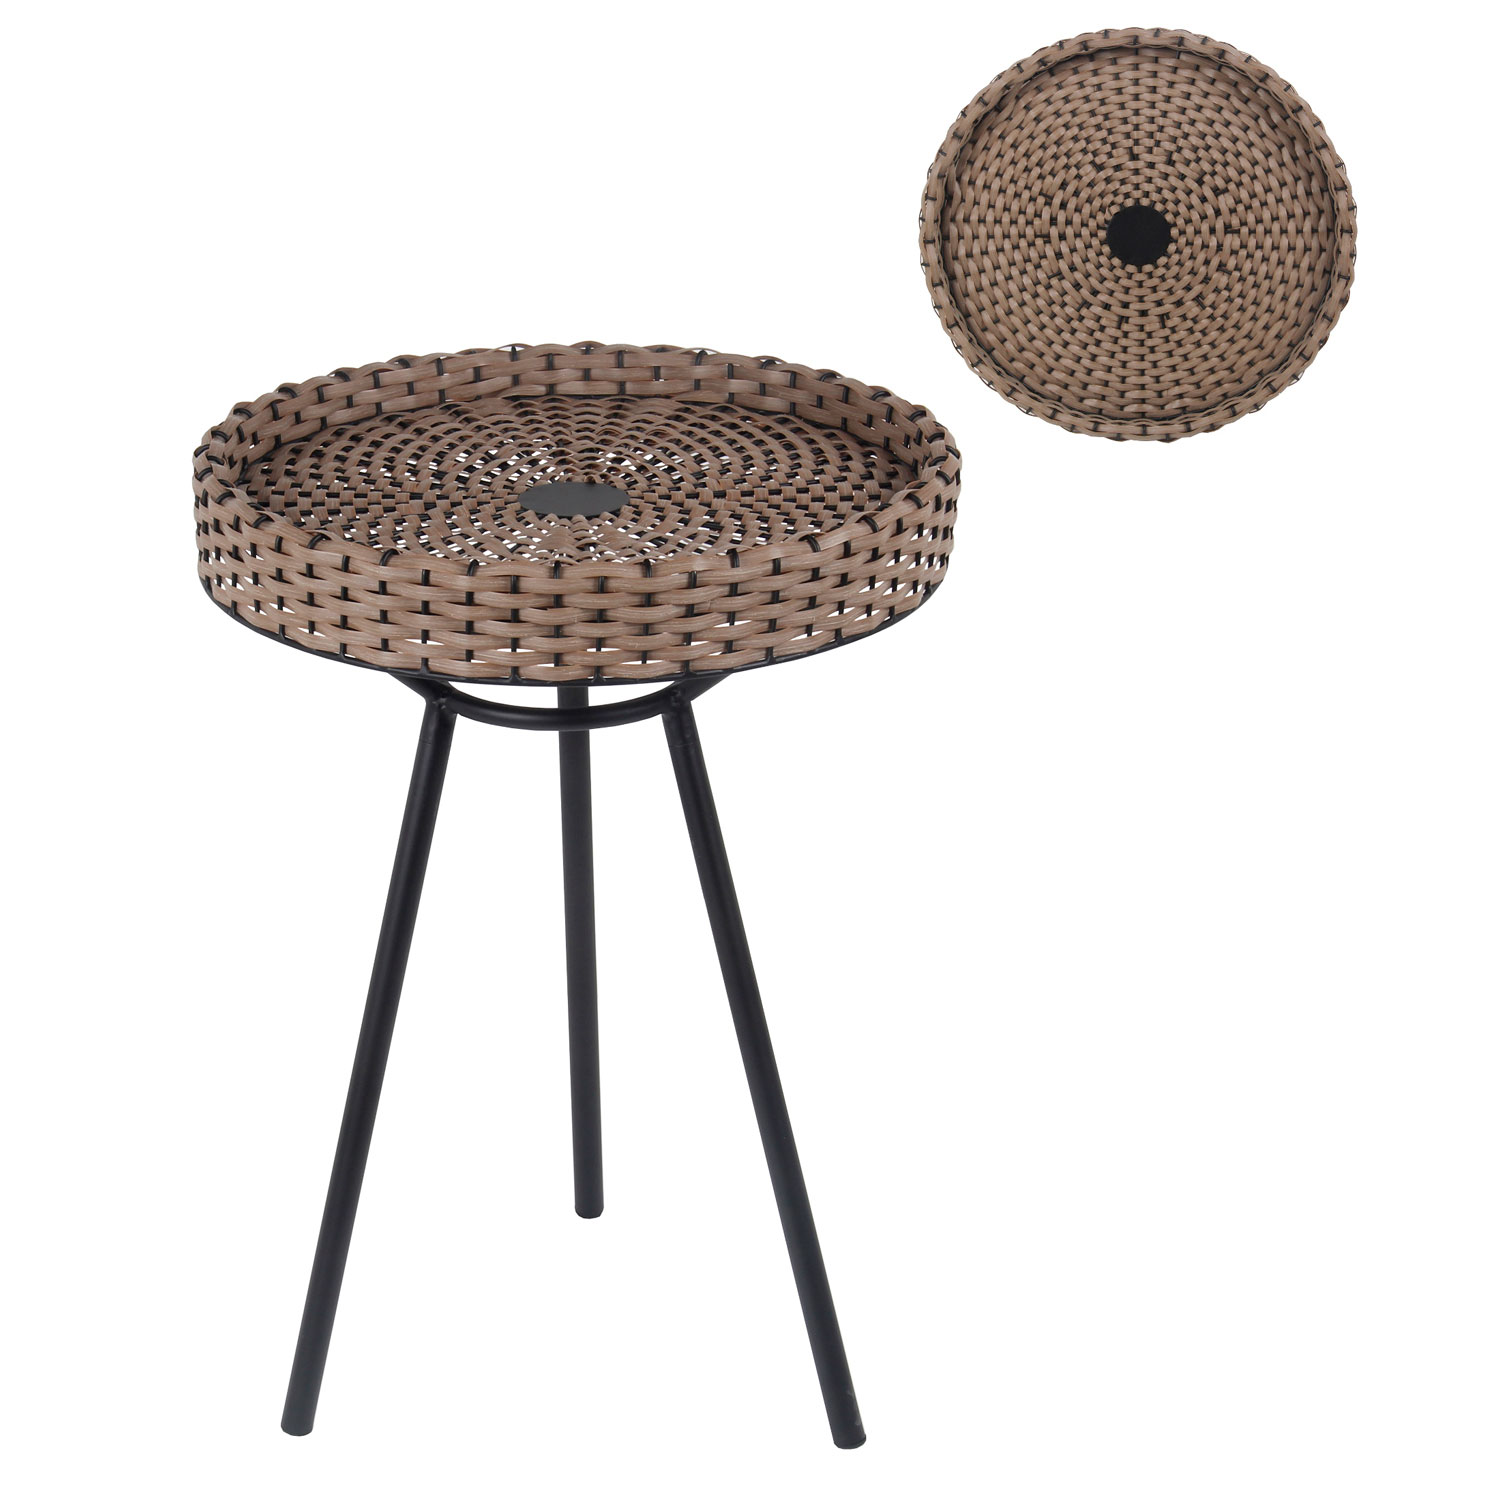 privilege black resin wicker accent table bellacor outdoor hover zoom house decorating ideas tall lamp base lamps with usb and half moon foyer building legs slender console rustic